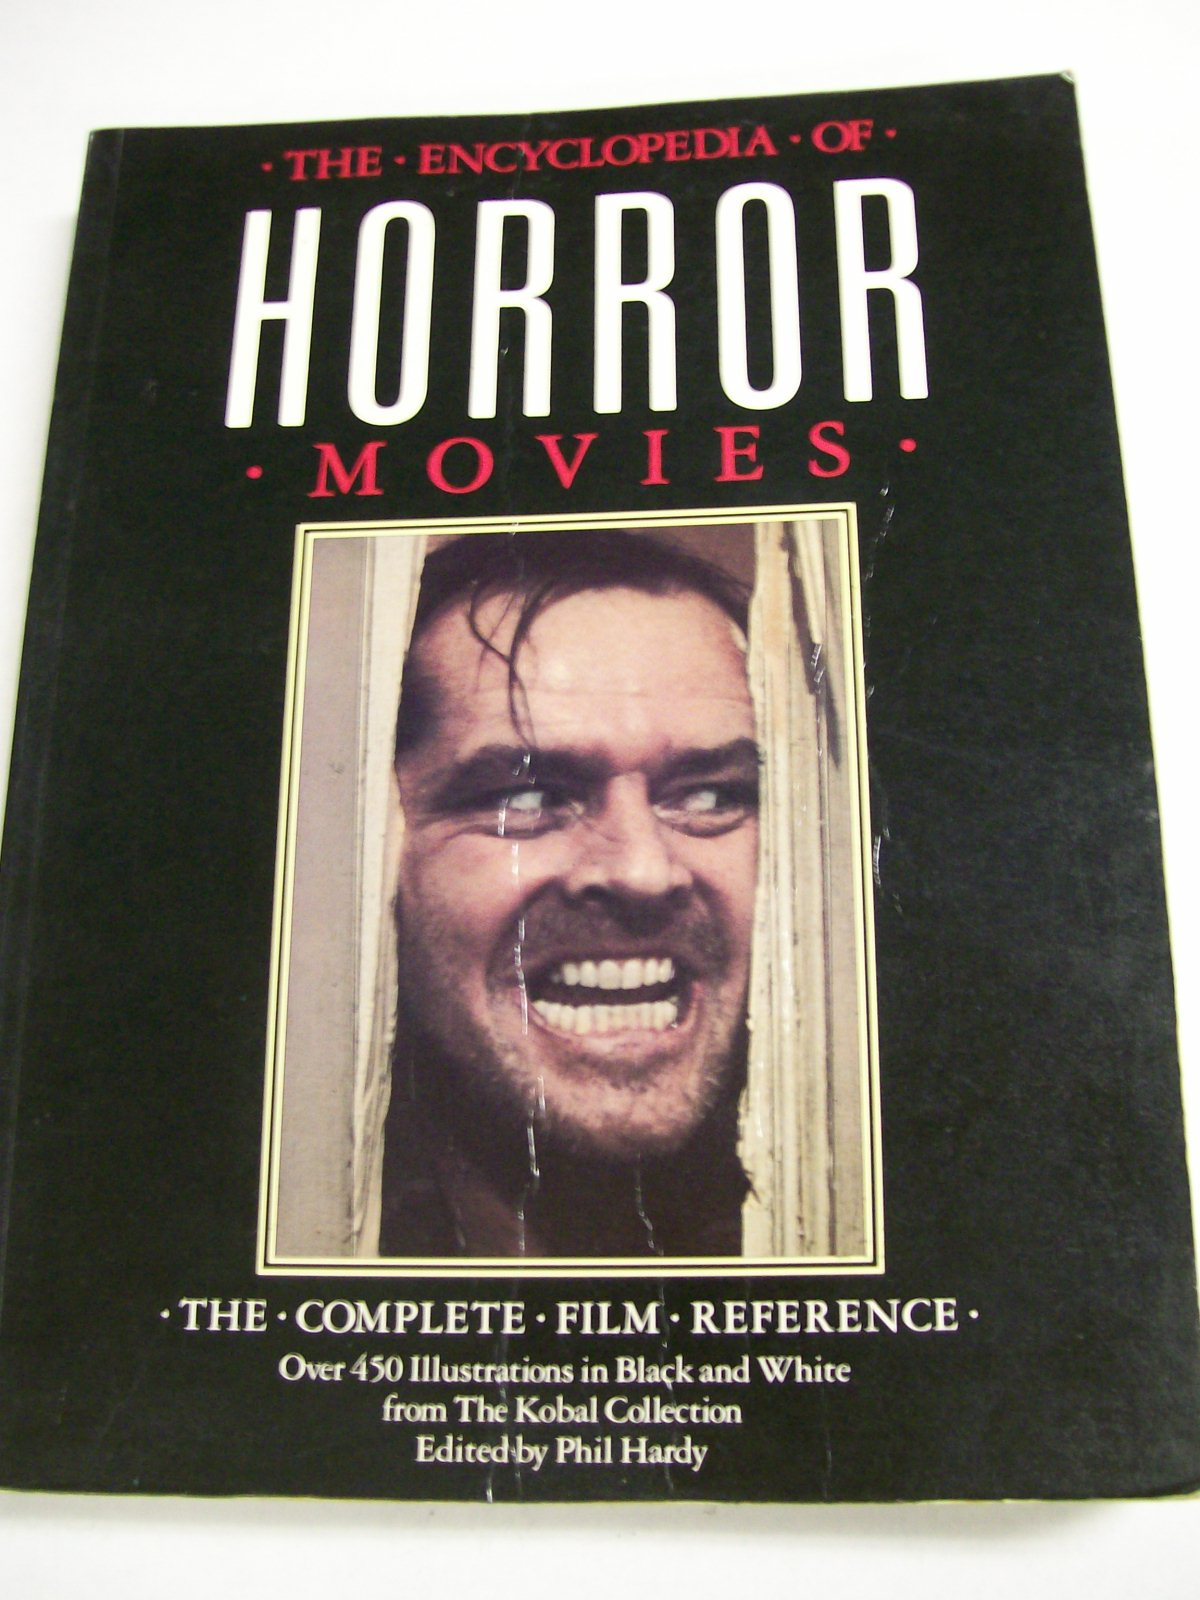 The Encyclopedia Of Horror Movies/1986 by Phil Hardy